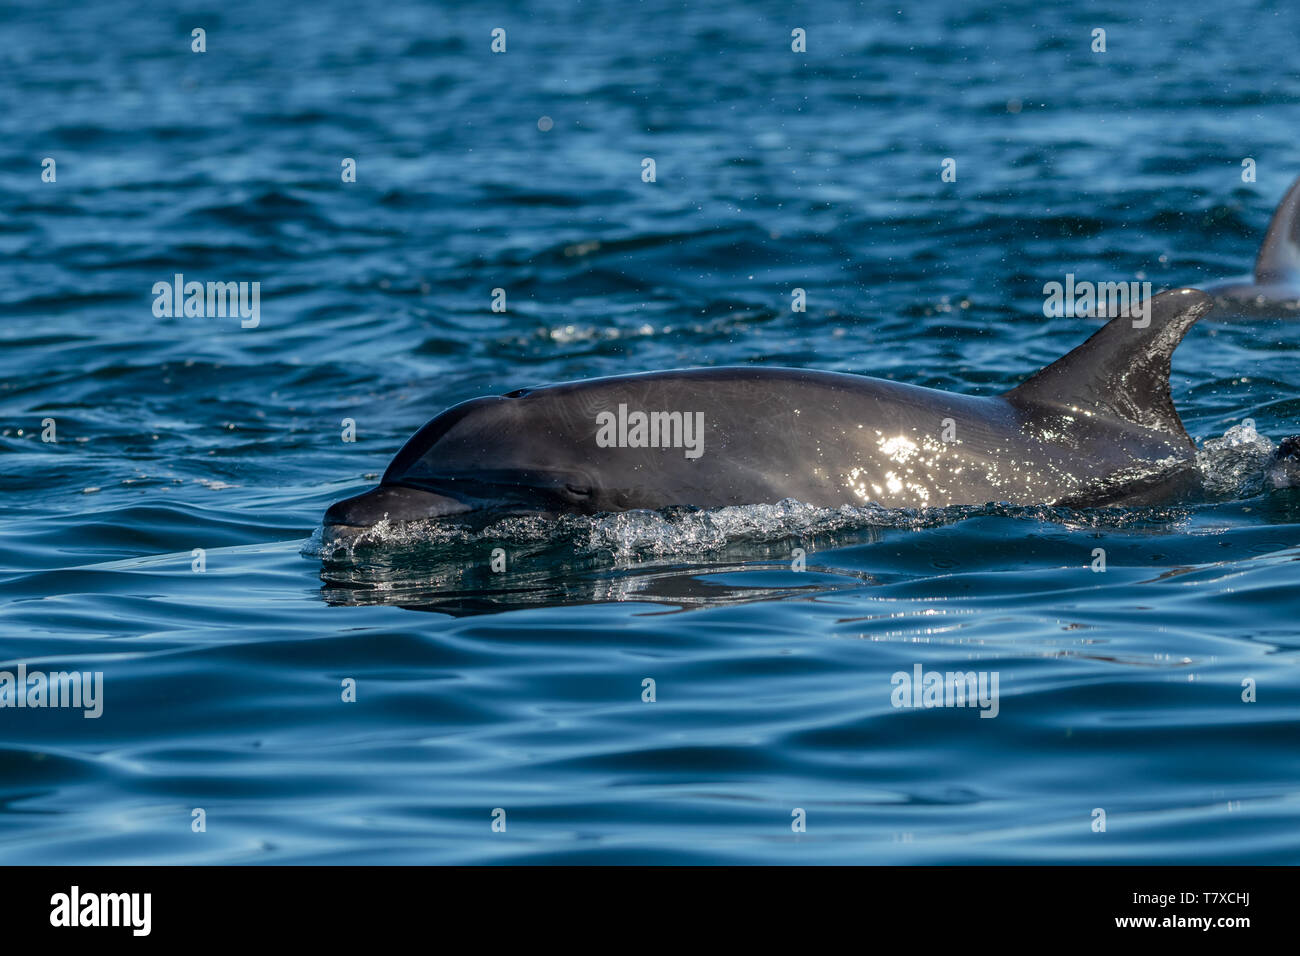 Bottlenose Dolphin (Tursiops truncatus) on the surface off the coast of Baja California, Mexico. Stock Photo